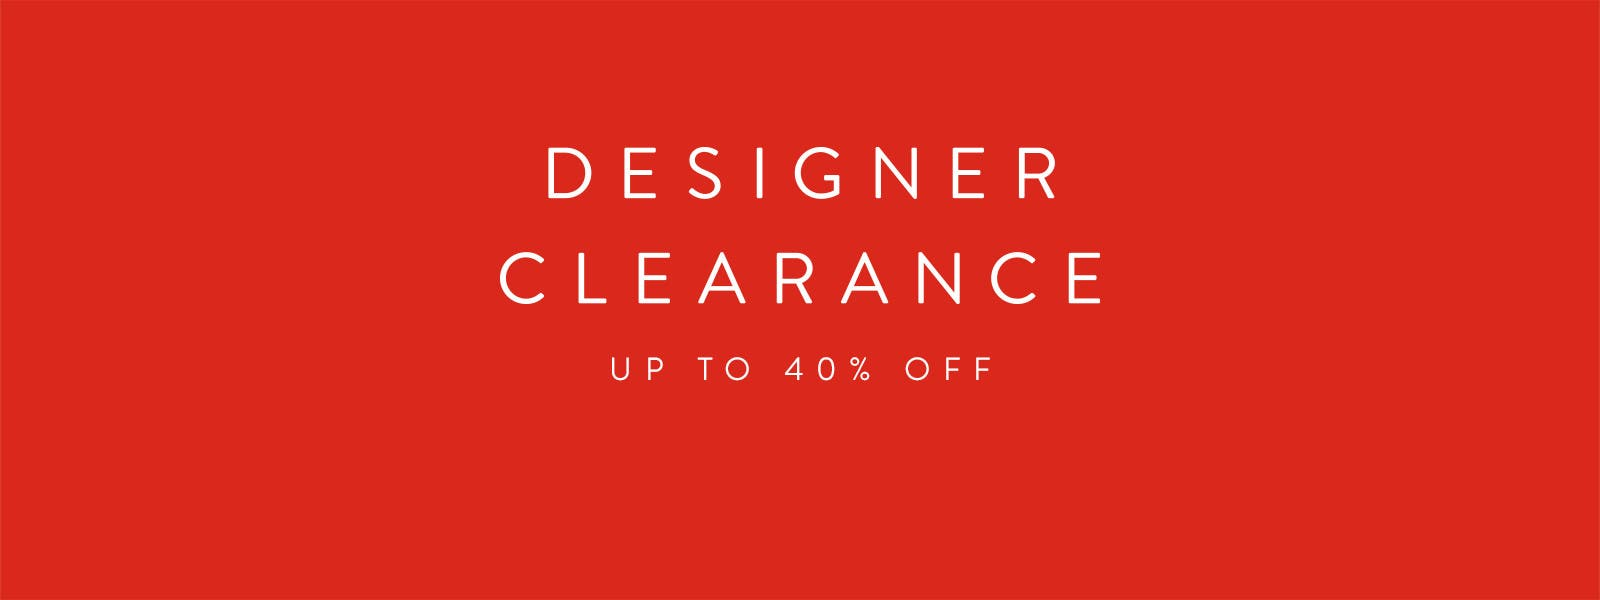 Designer Clearance Sale. Up to 40% off women's designer shoes.